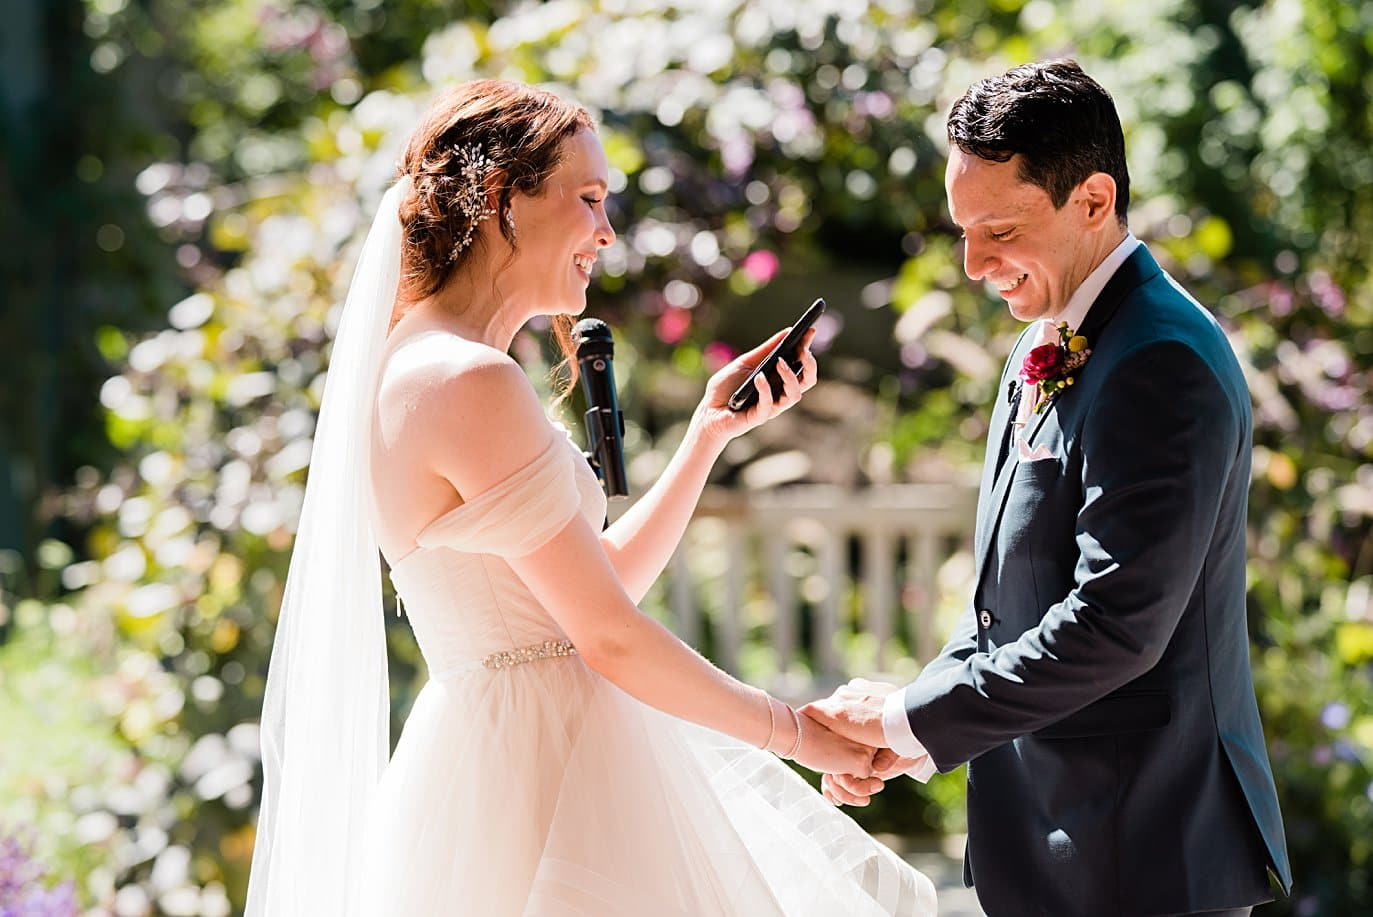 bride and groom say vows during self-solemnized cermony at Denver Botanic Gardens microwedding by Denver wedding photographer Jennie Crate